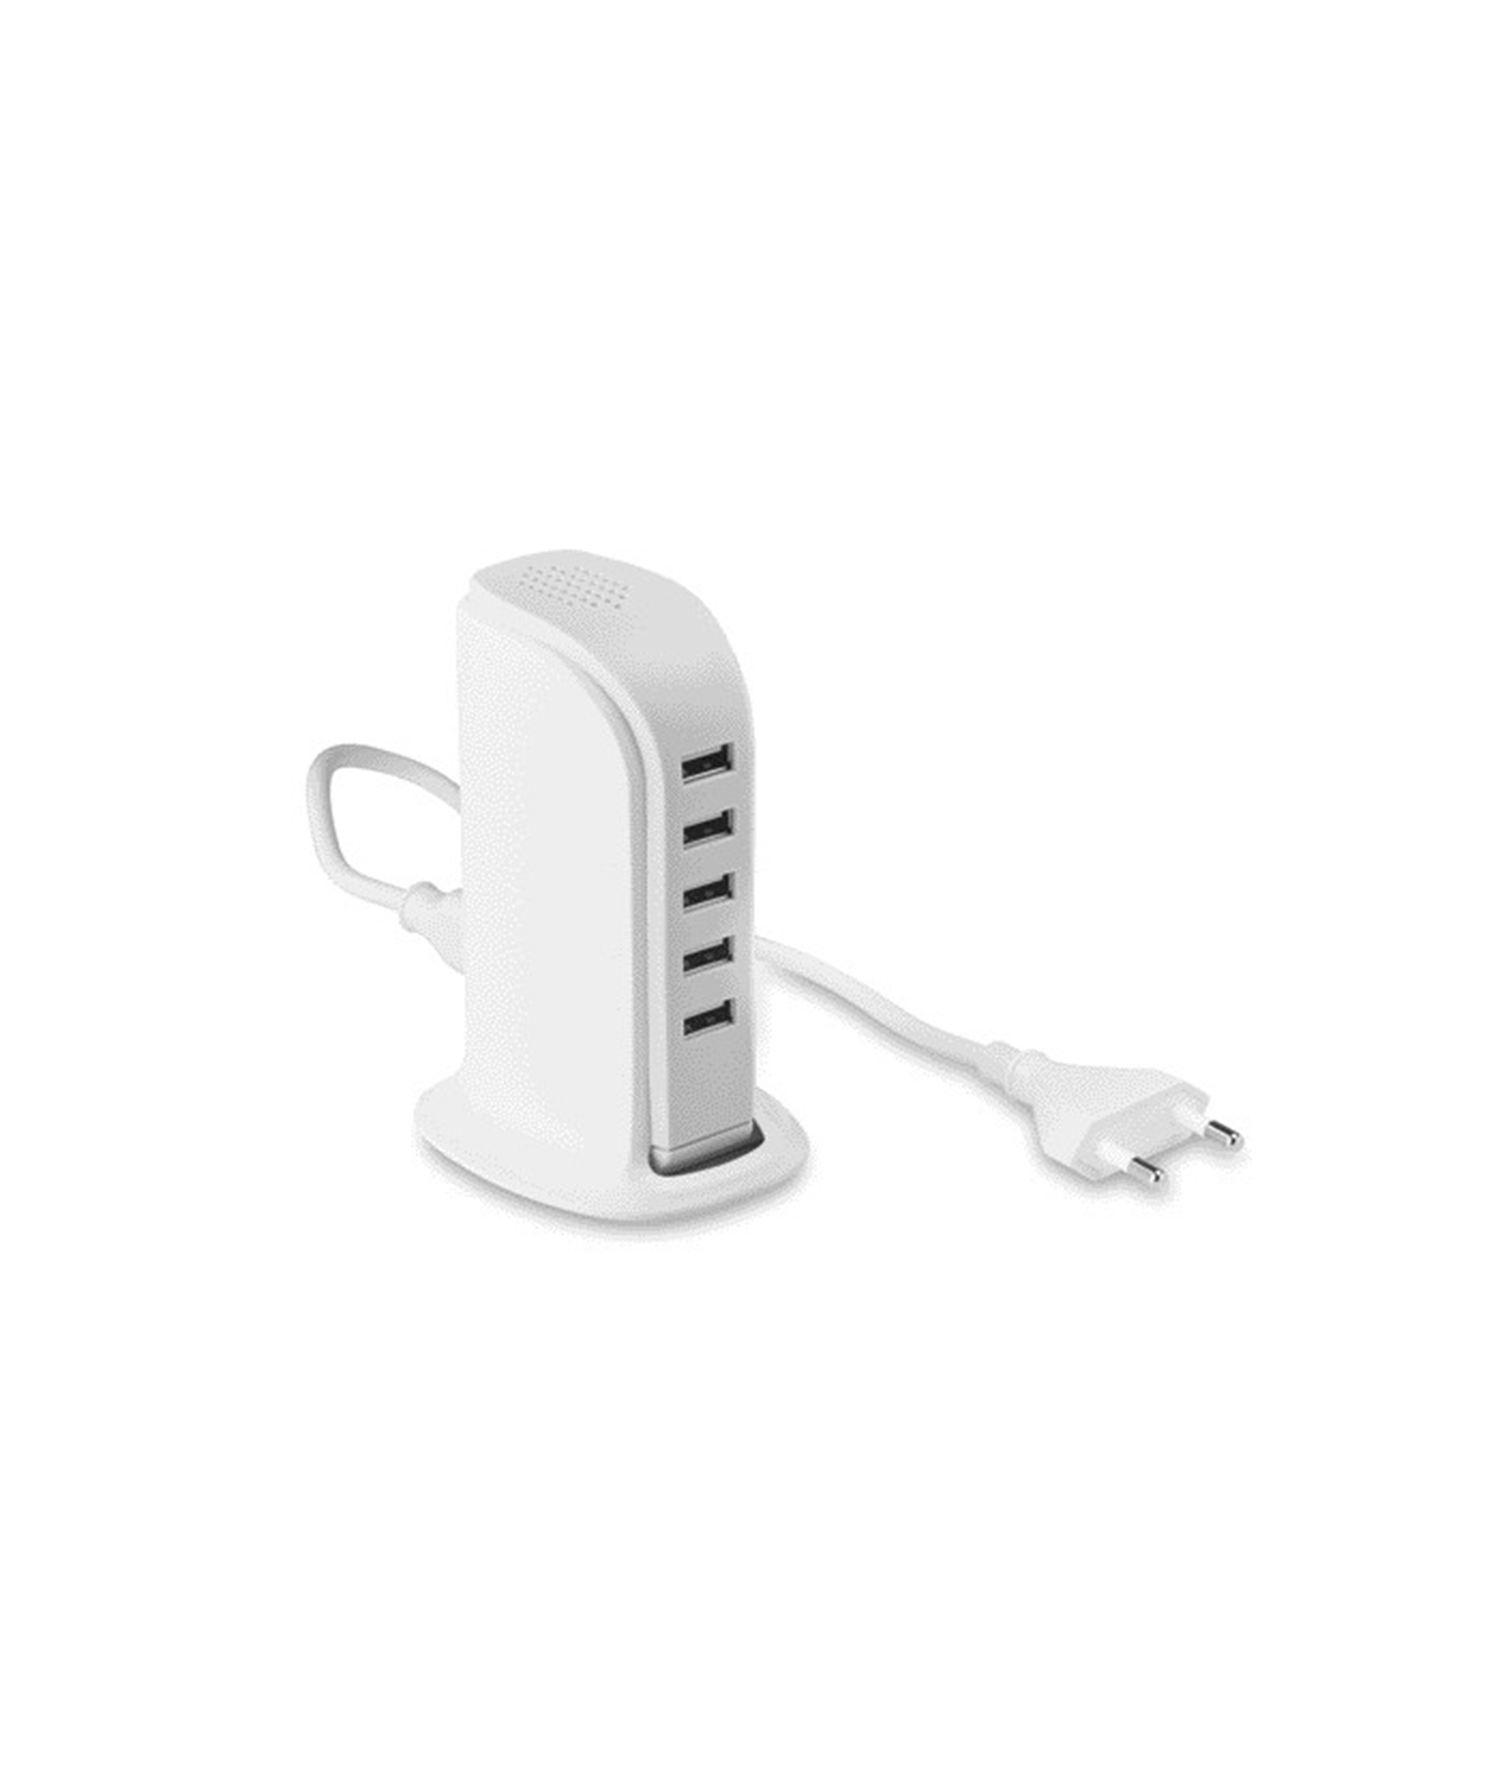 BUILDY - 5 PORT USB HUB WITH AC ADAPTOR